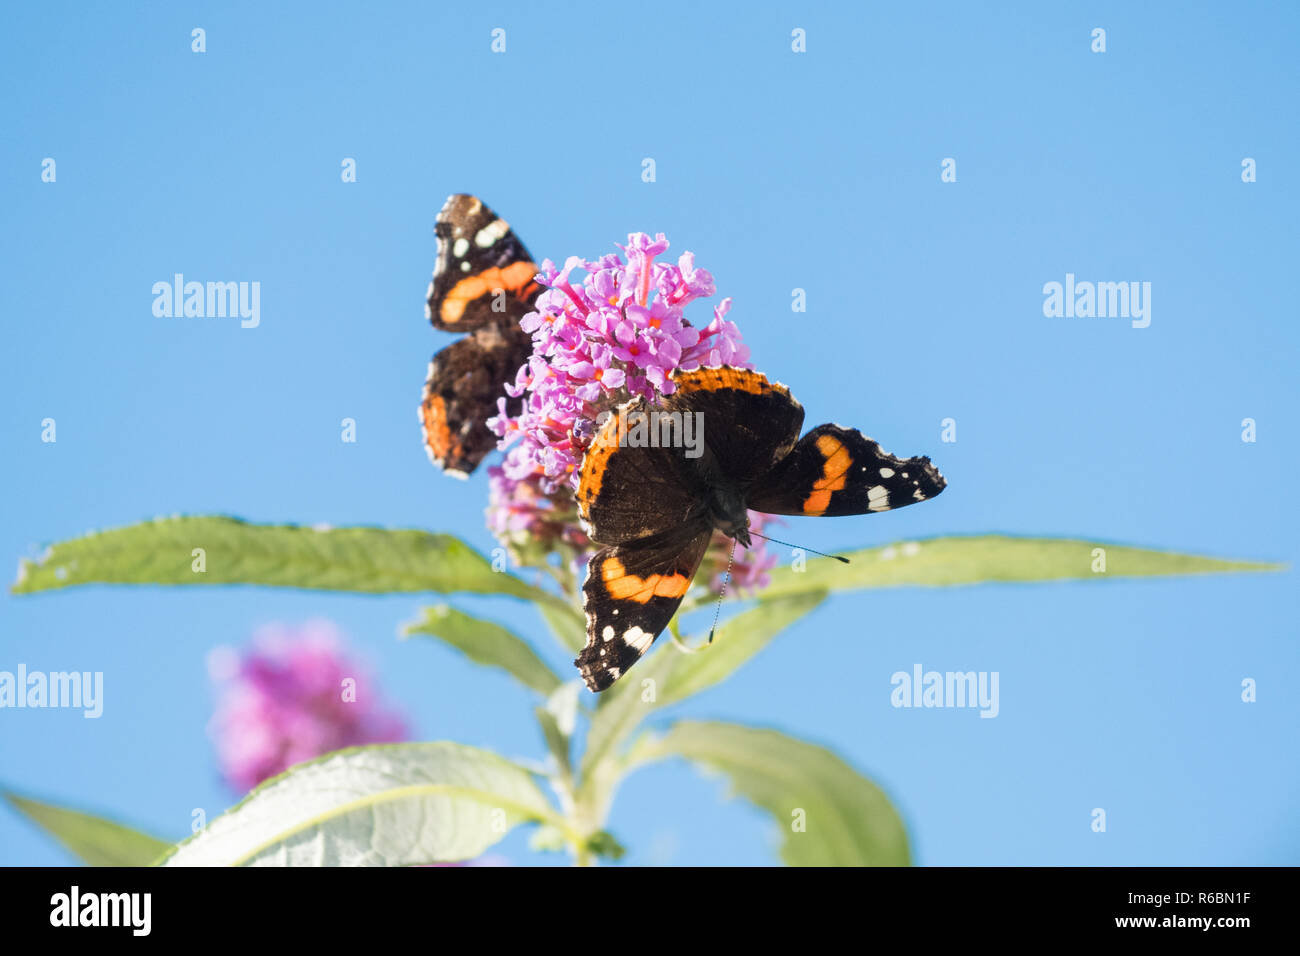 Red Admiral butterfly or Vanessa atalanta butterflies on buddleia or butterfly bush against blue sky with copy space - Scotland, UK - Stock Image